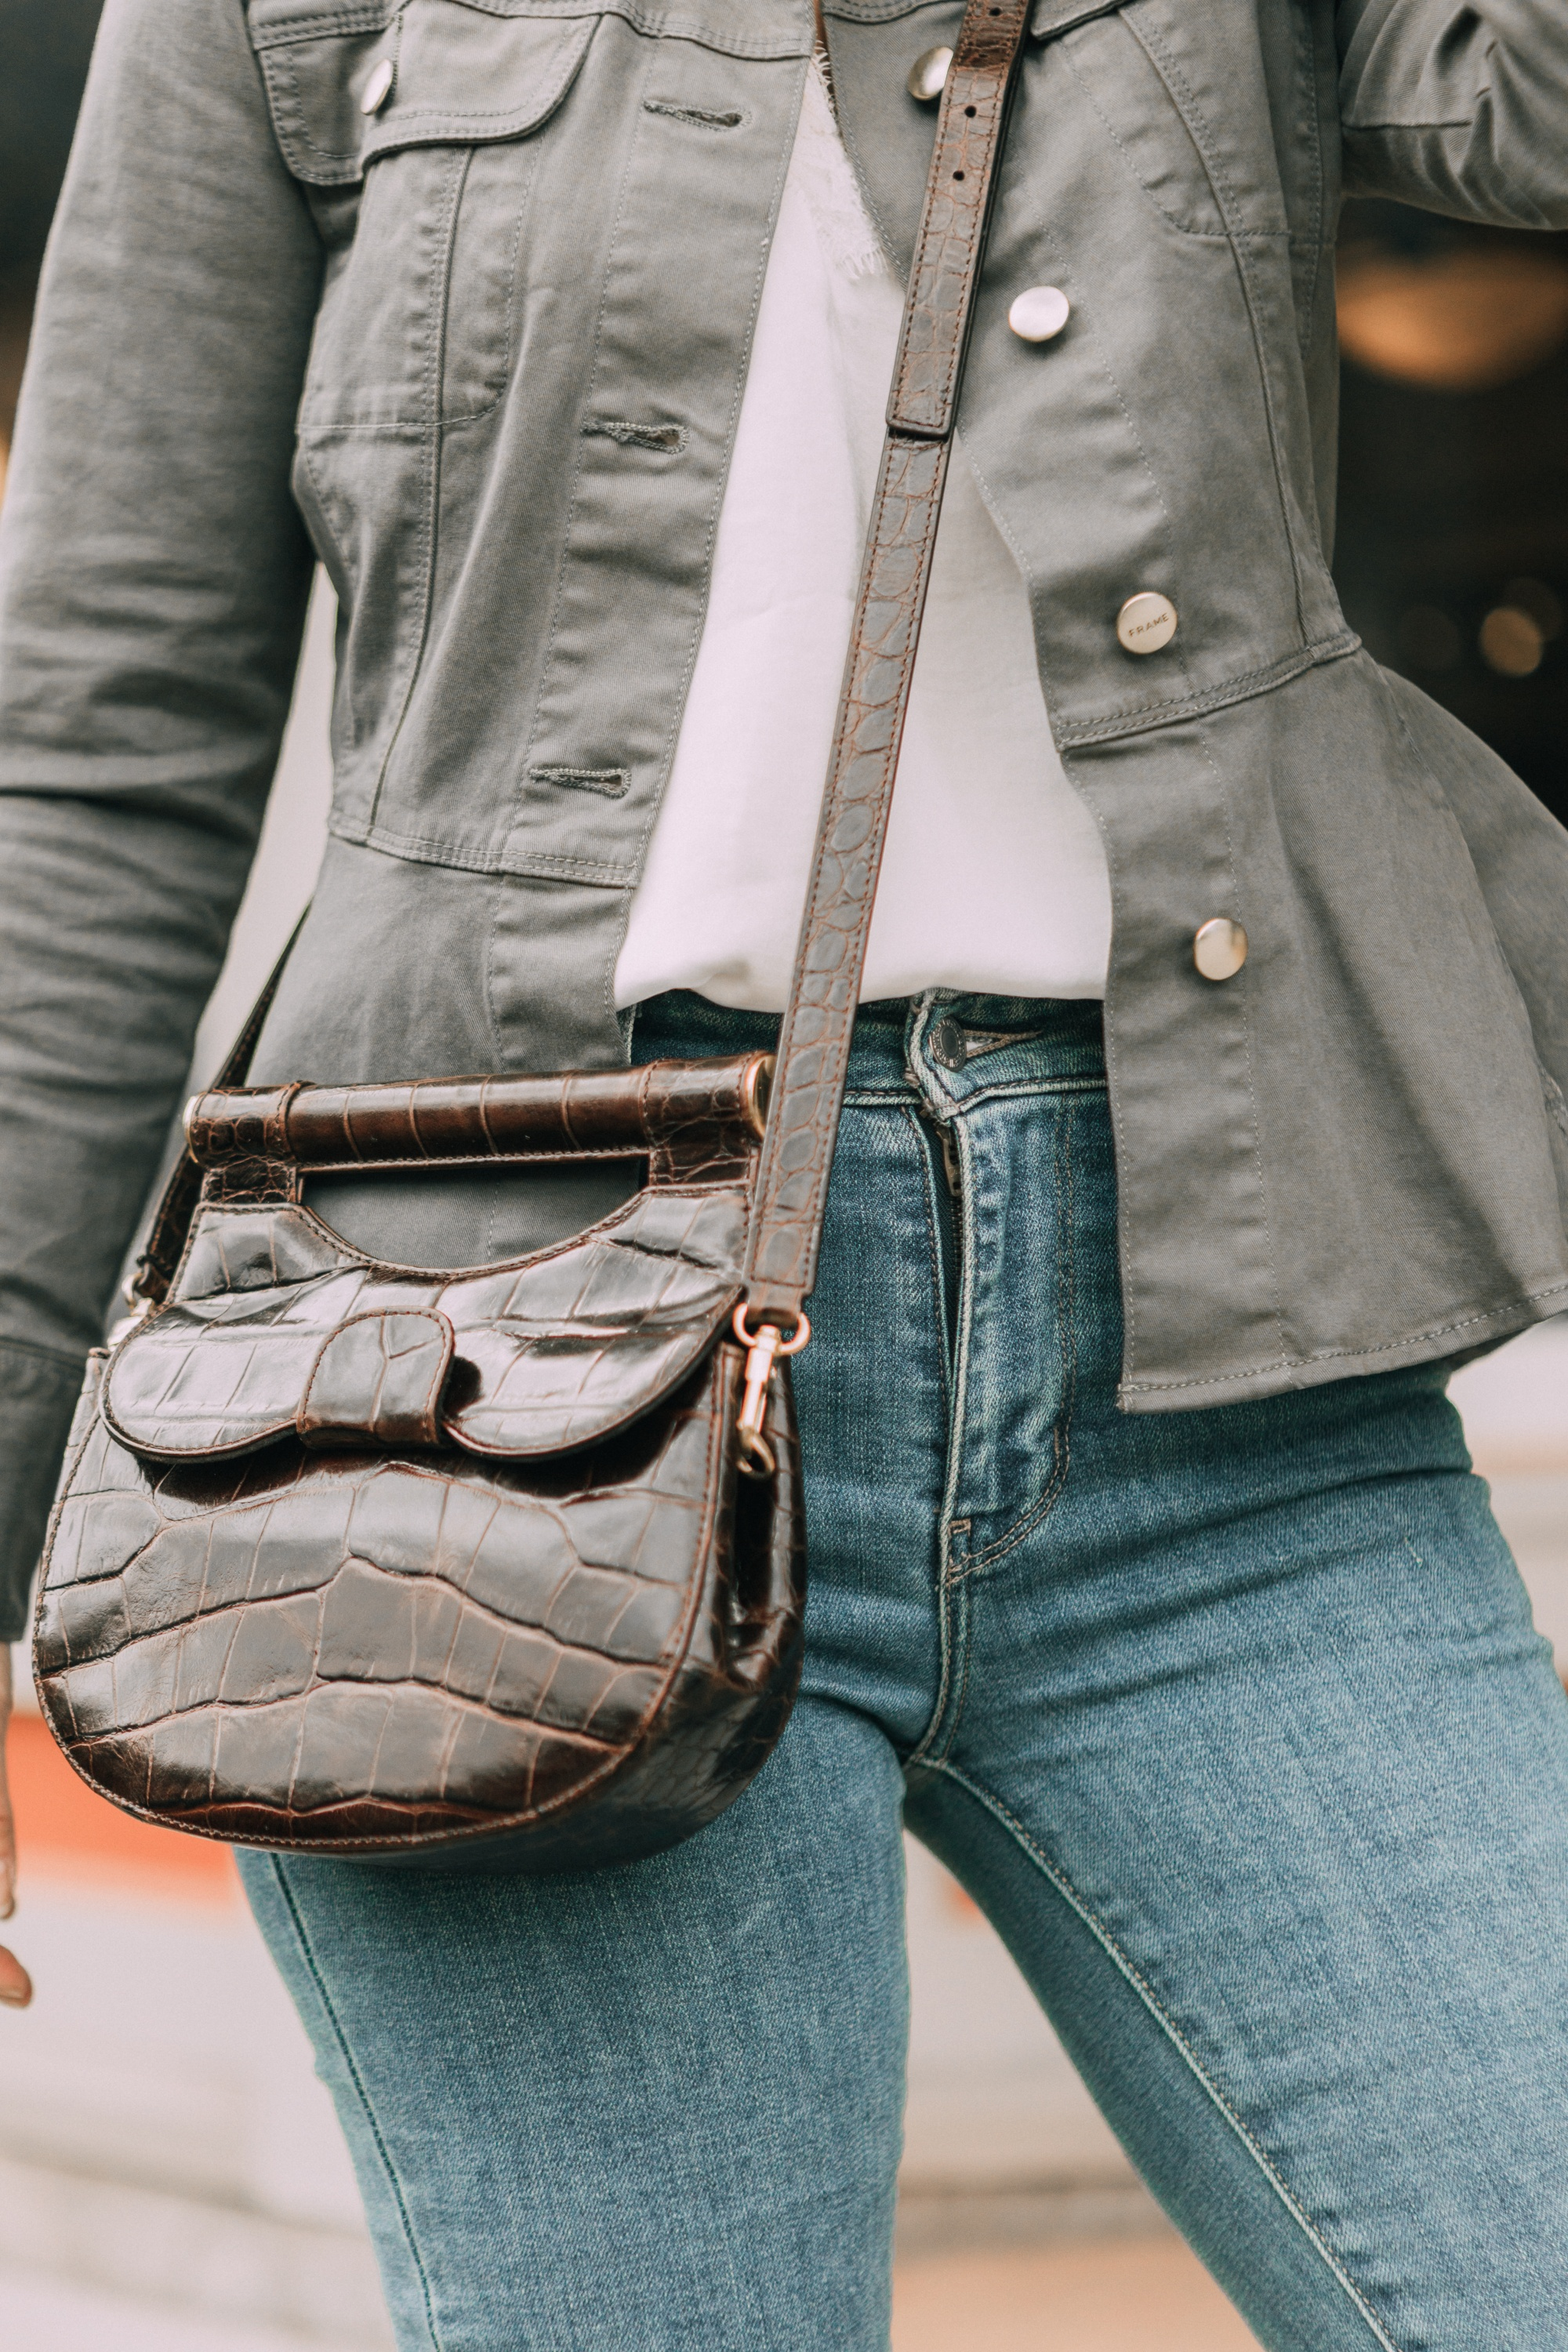 Hot Handbags, Fashion blogger Erin Busbee of BusbeeStyle.com wearing the brown STAUD Madeline Croc-Embossed Crossbody Bag with Levi jeans, white cami, and Frame peplum hem green jacket in Telluride, Colorado